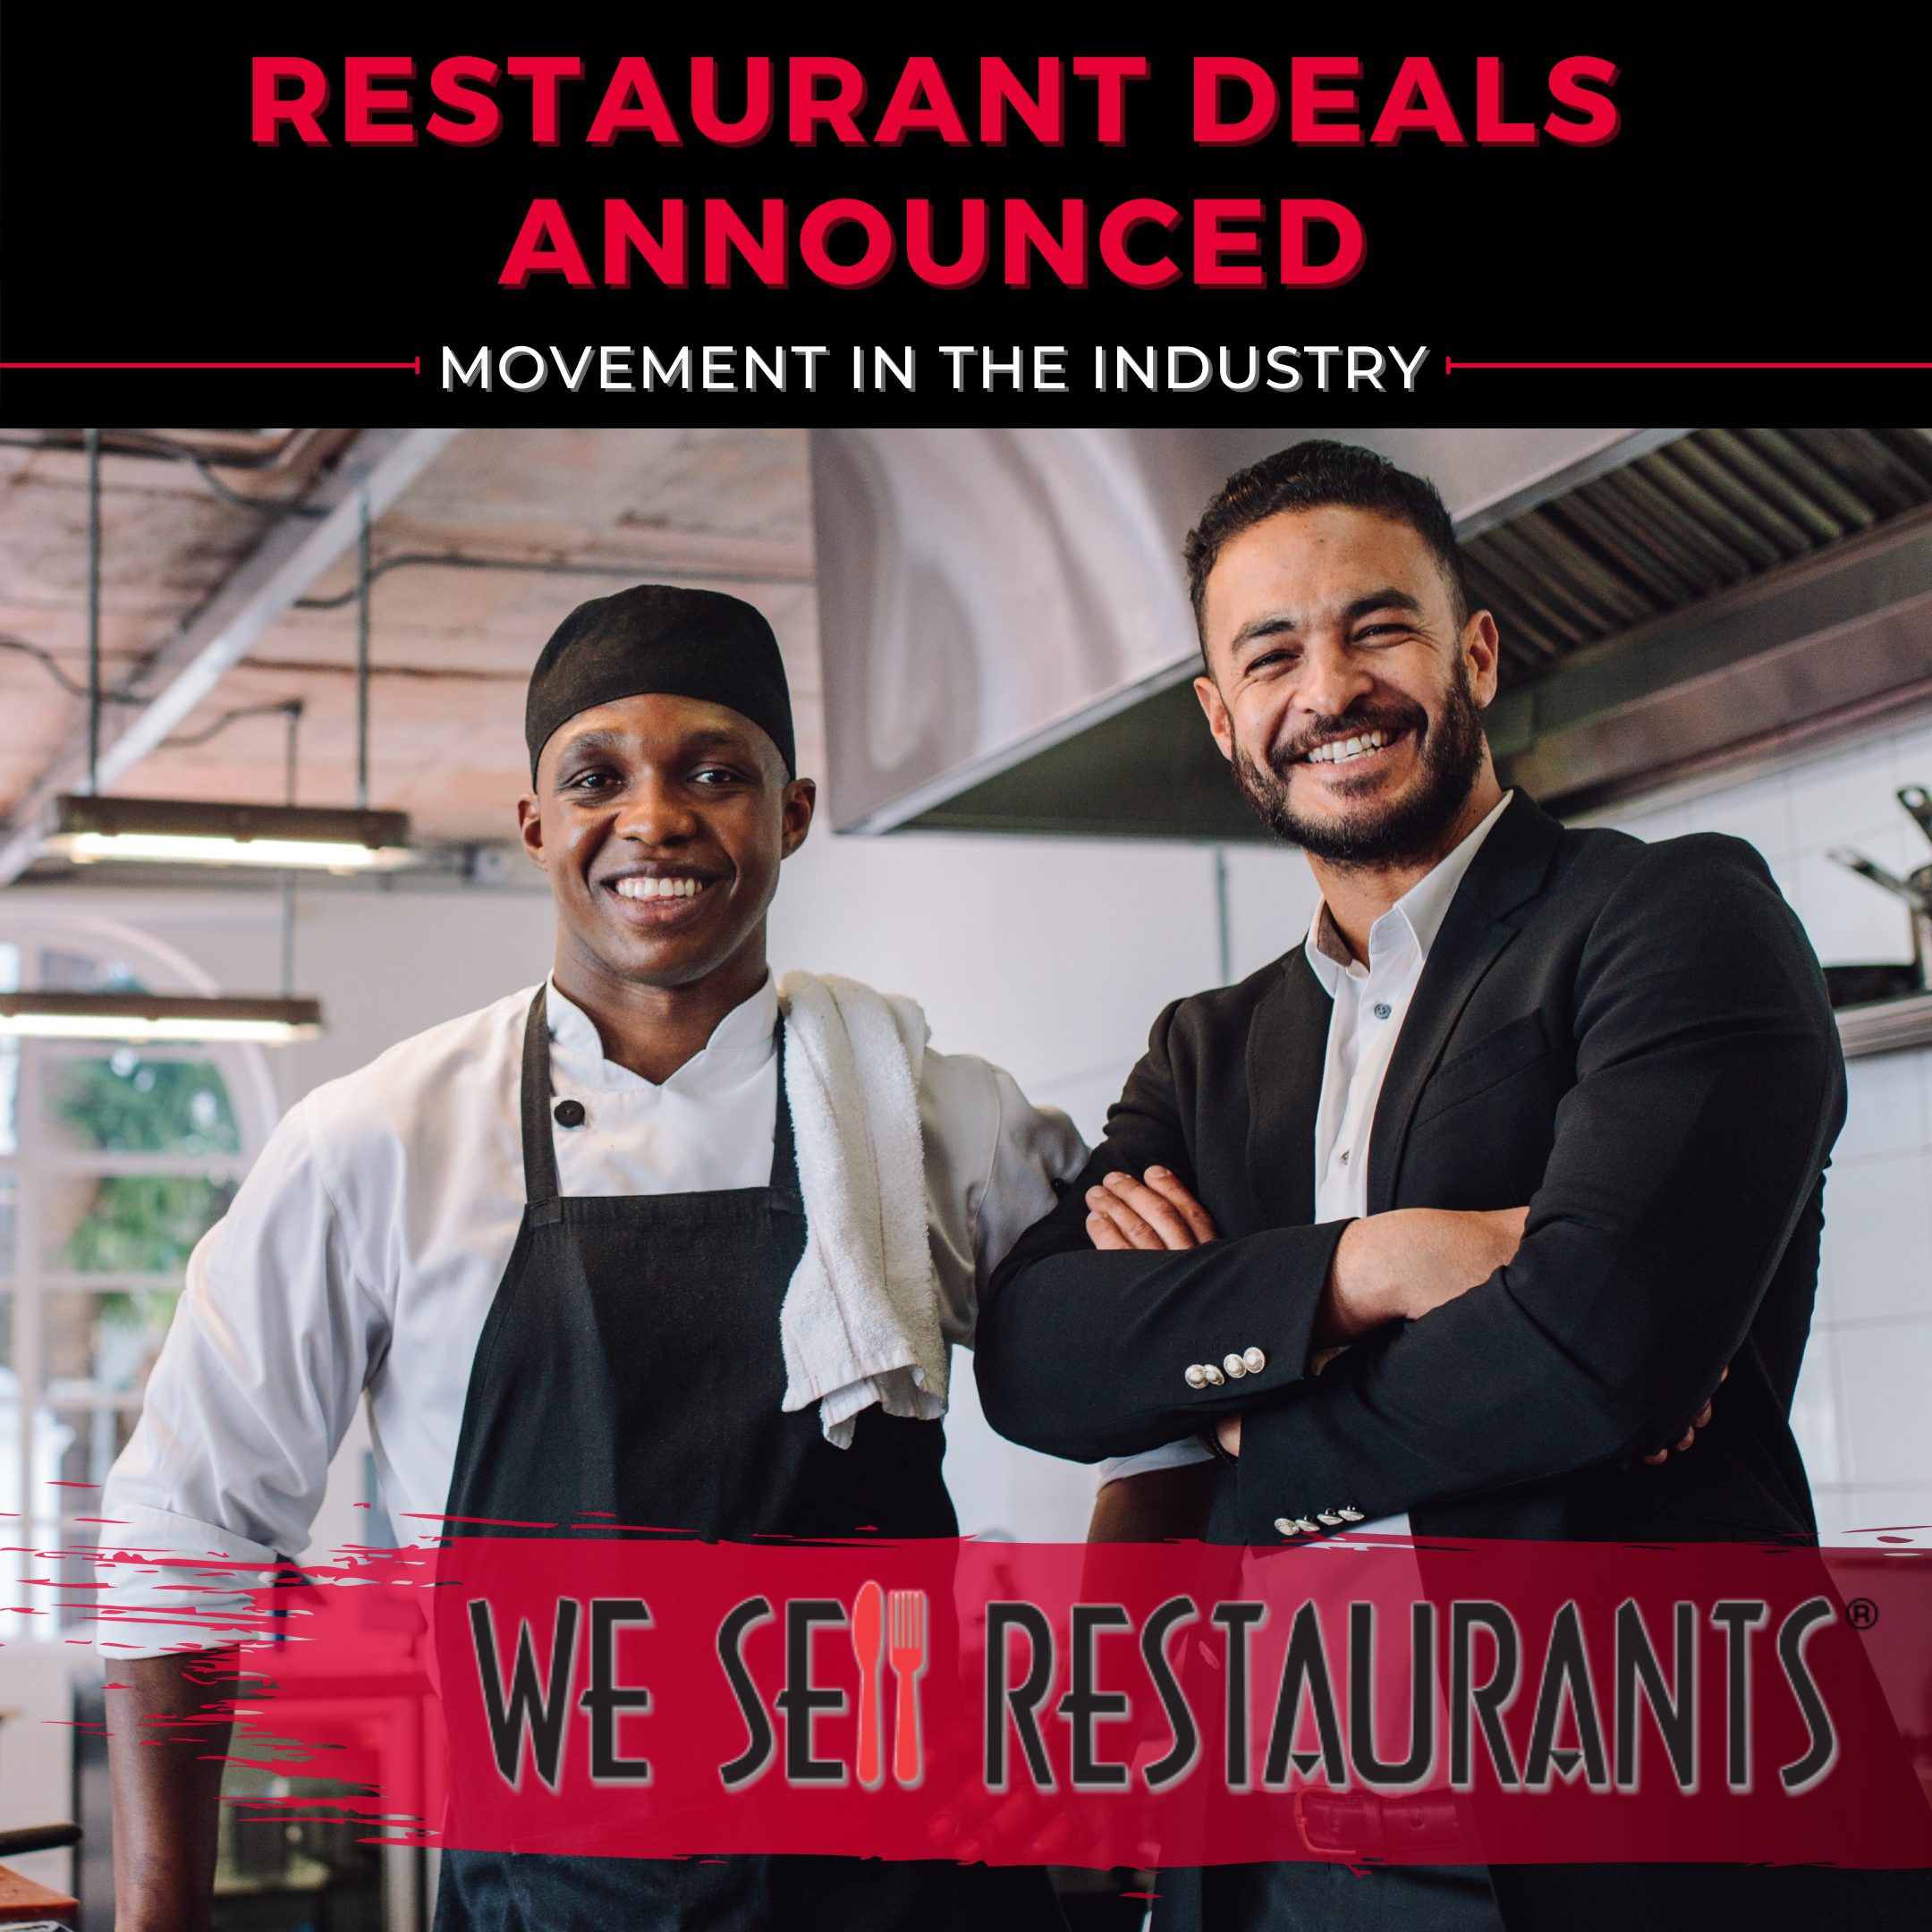 Restaurant Deals Announced - Movement in the Industry